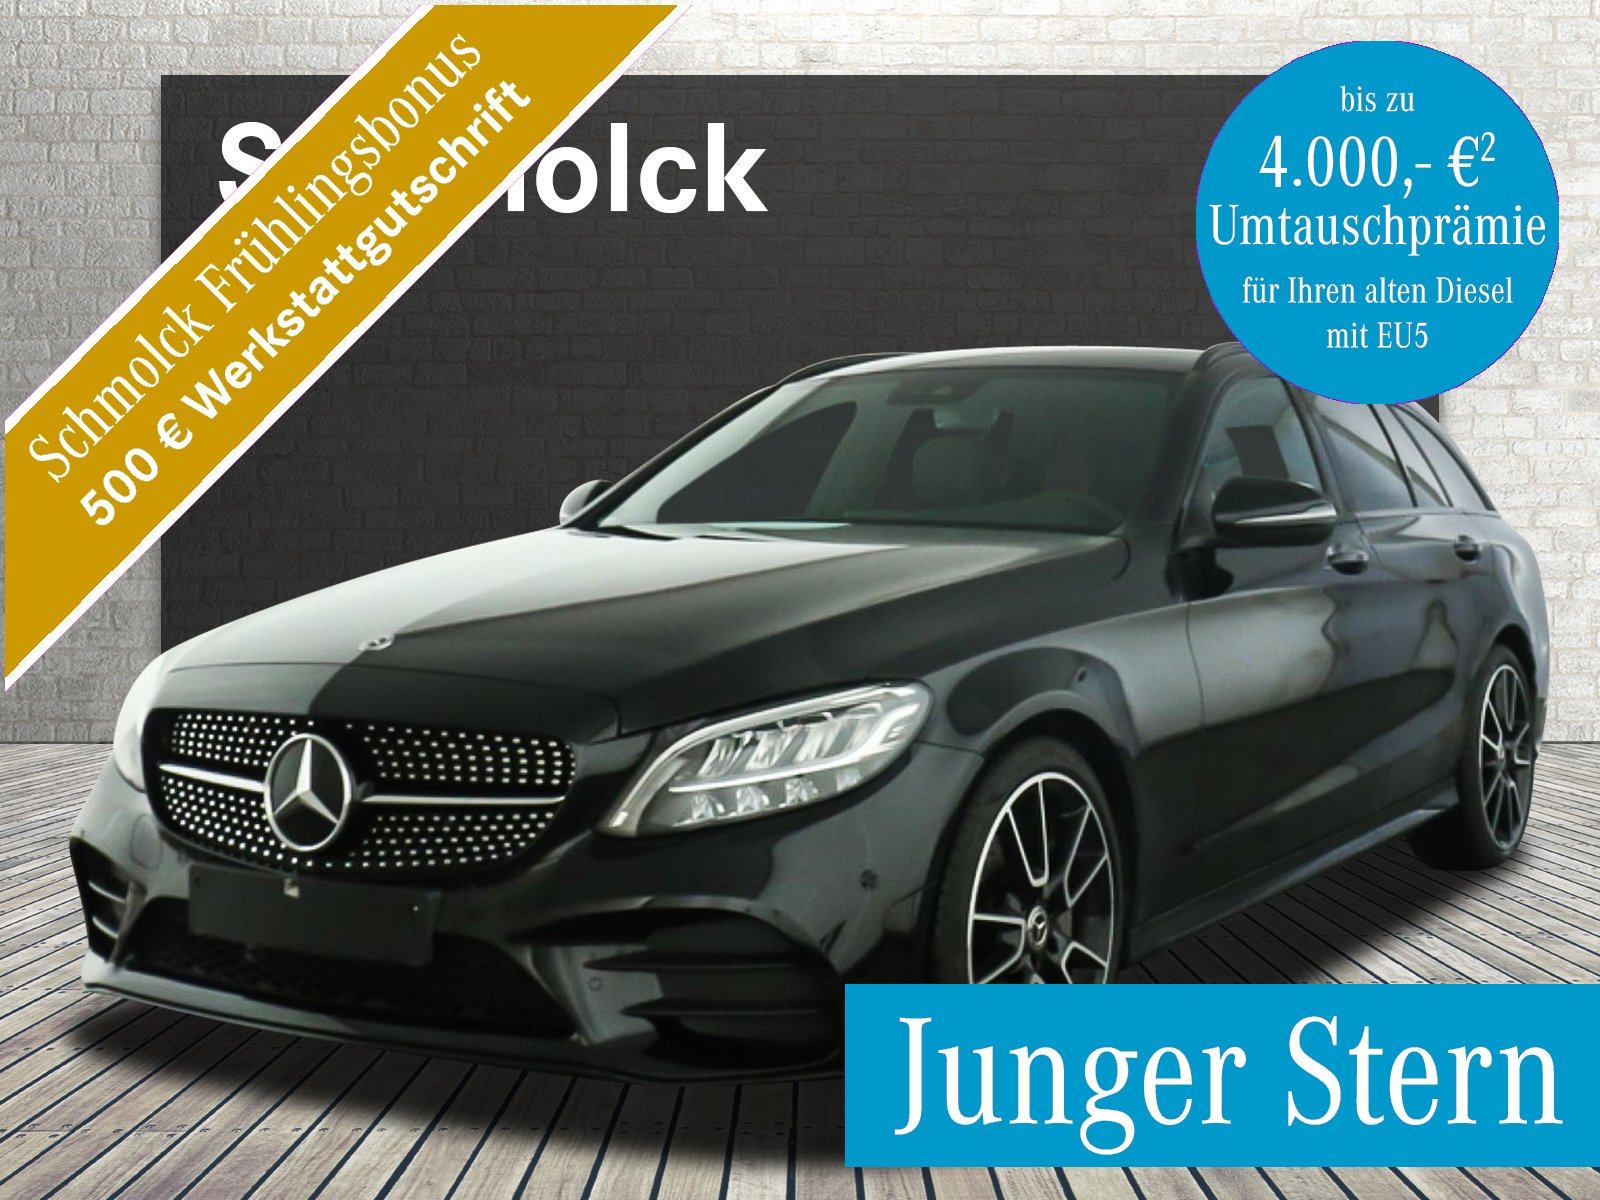 mercedes-benz c 300 t d amg dstr stdhz 19 kamera sounds night, jahr 2020, diesel